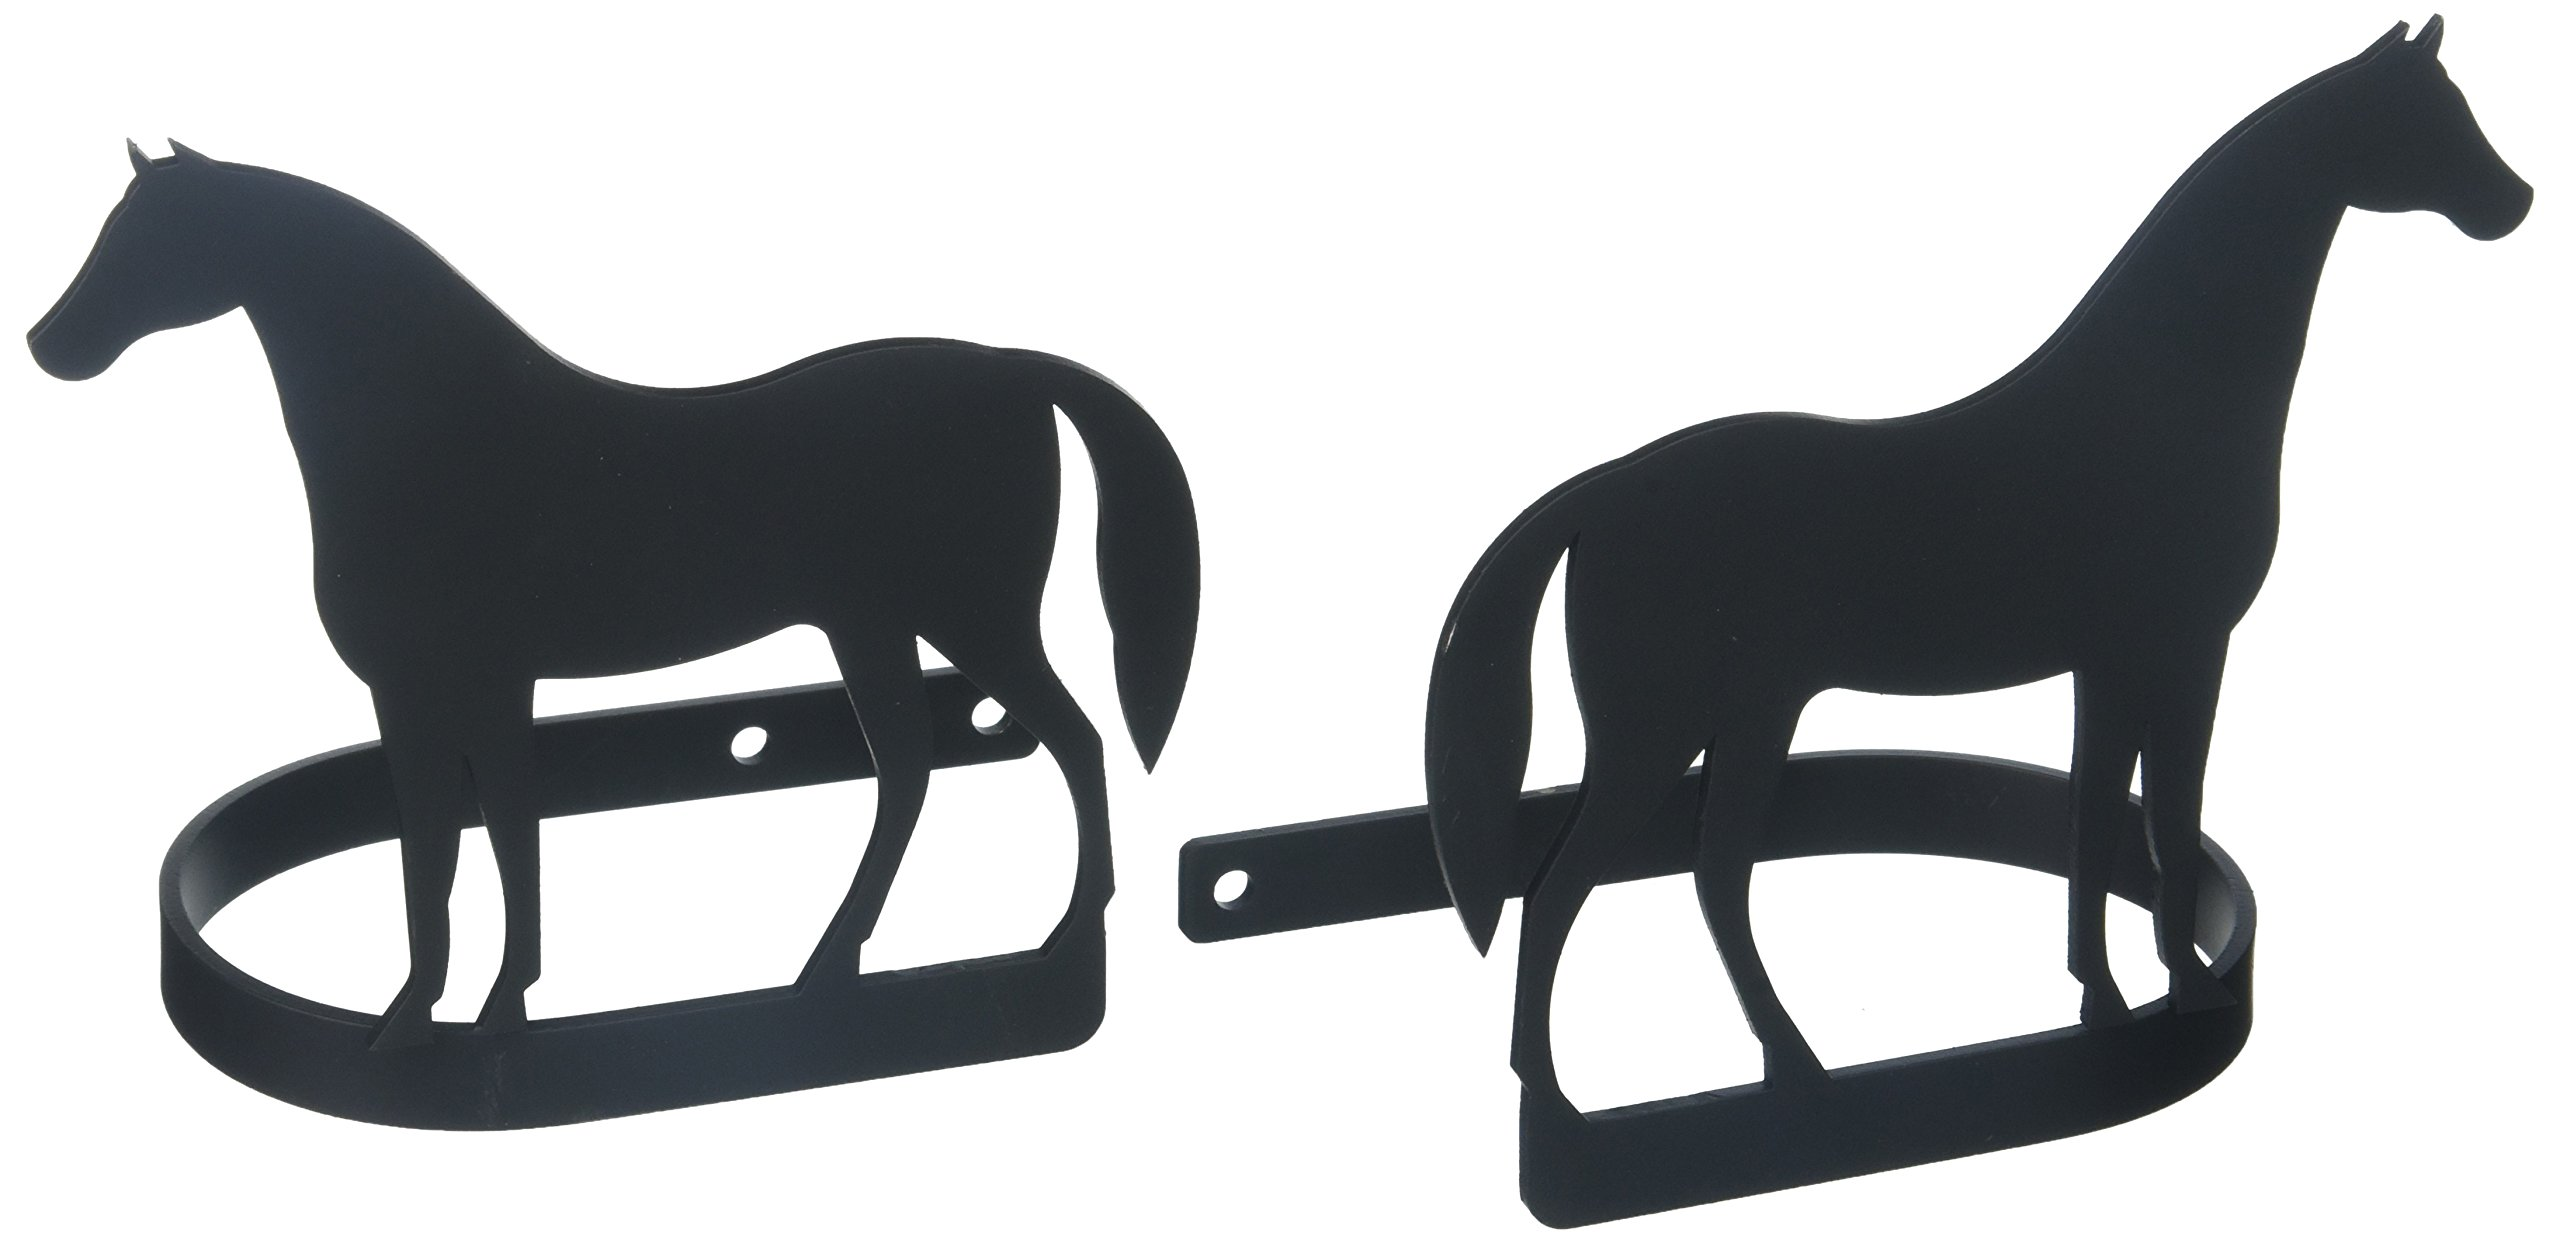 Village Wrought Iron 5.25 Inch Standing Horse Curtain Tie Backs